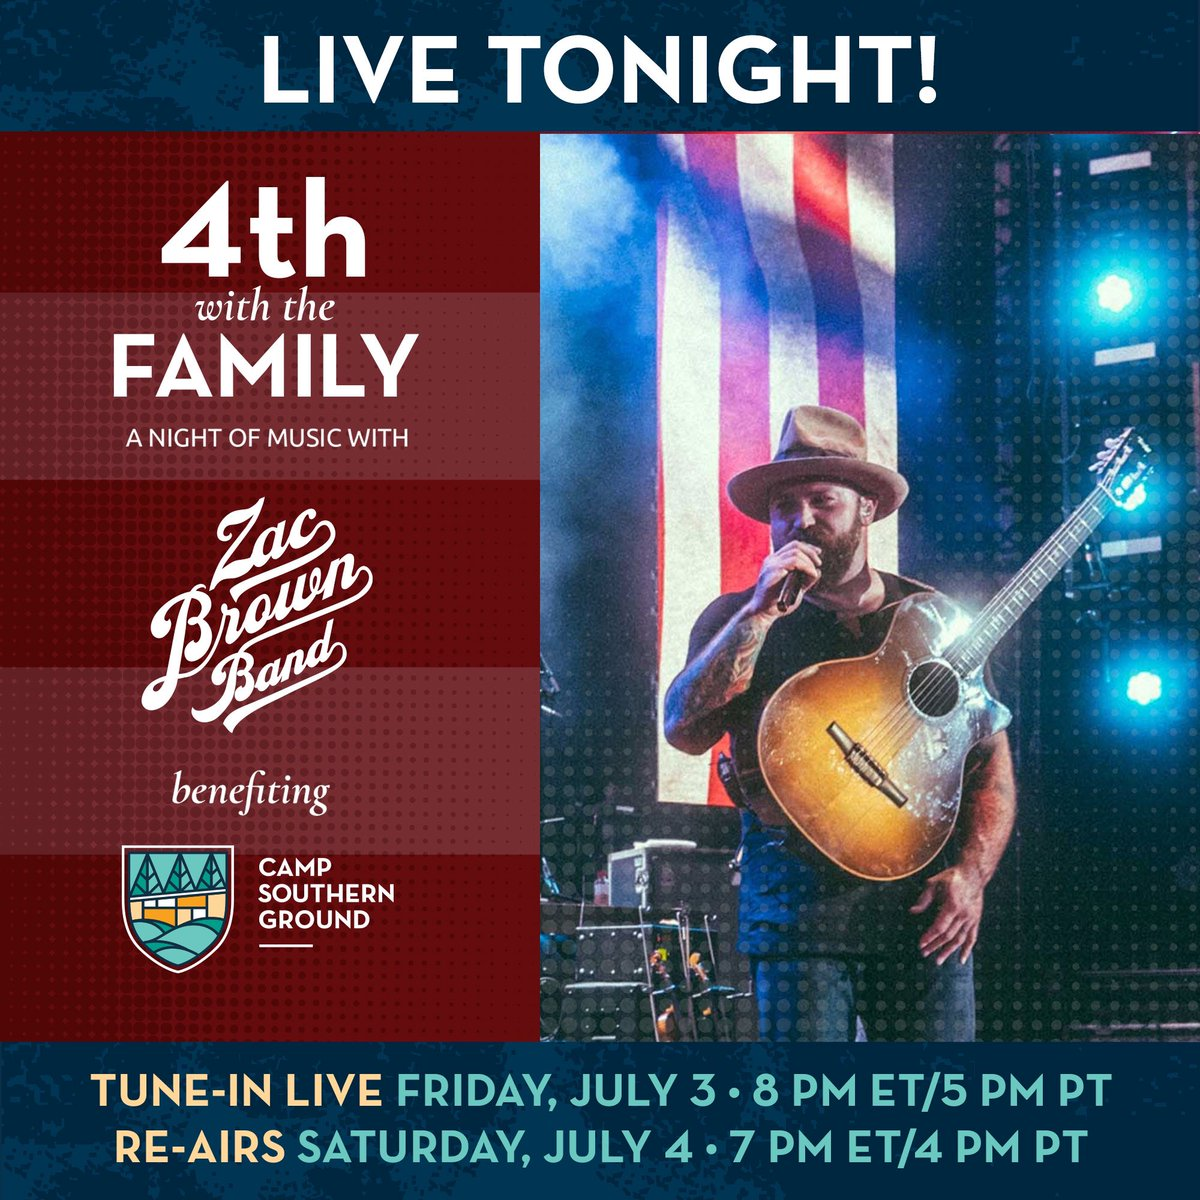 Tonight's the night! Join us live on Facebook and YouTube at 8pm ET to support @campsoutherngrd! Make a donation during the broadcast or give online here: https://t.co/uIEMrMM4xI #4thwiththefamily #warriorwellbeing https://t.co/OrJTKdUGD4